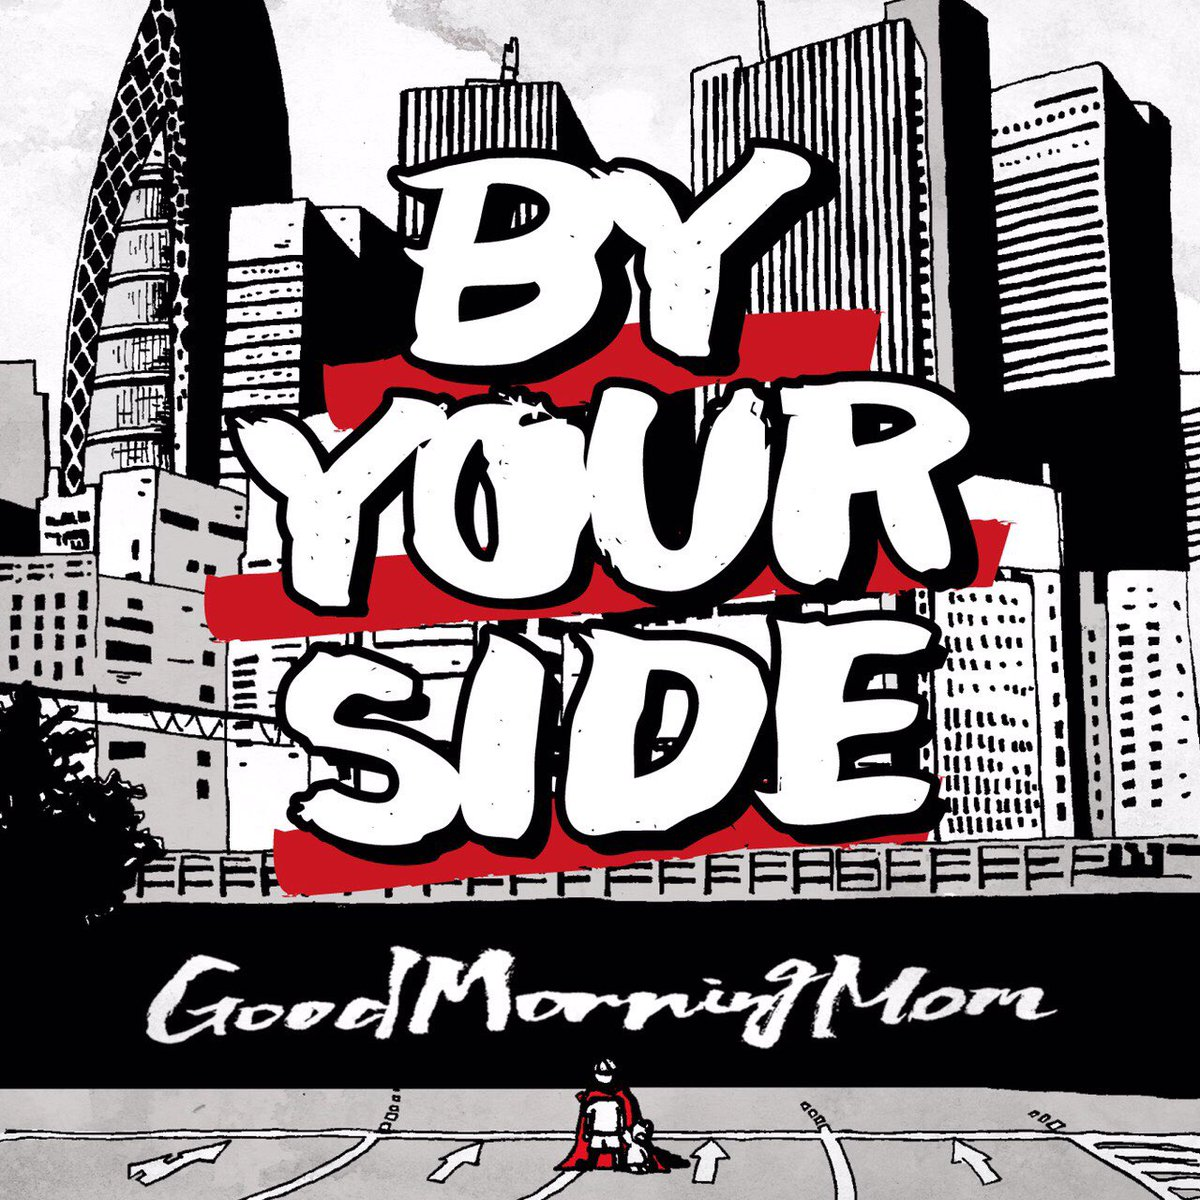 GoodMorningMom[BY YOUR SIDE]ジャケットデザイ